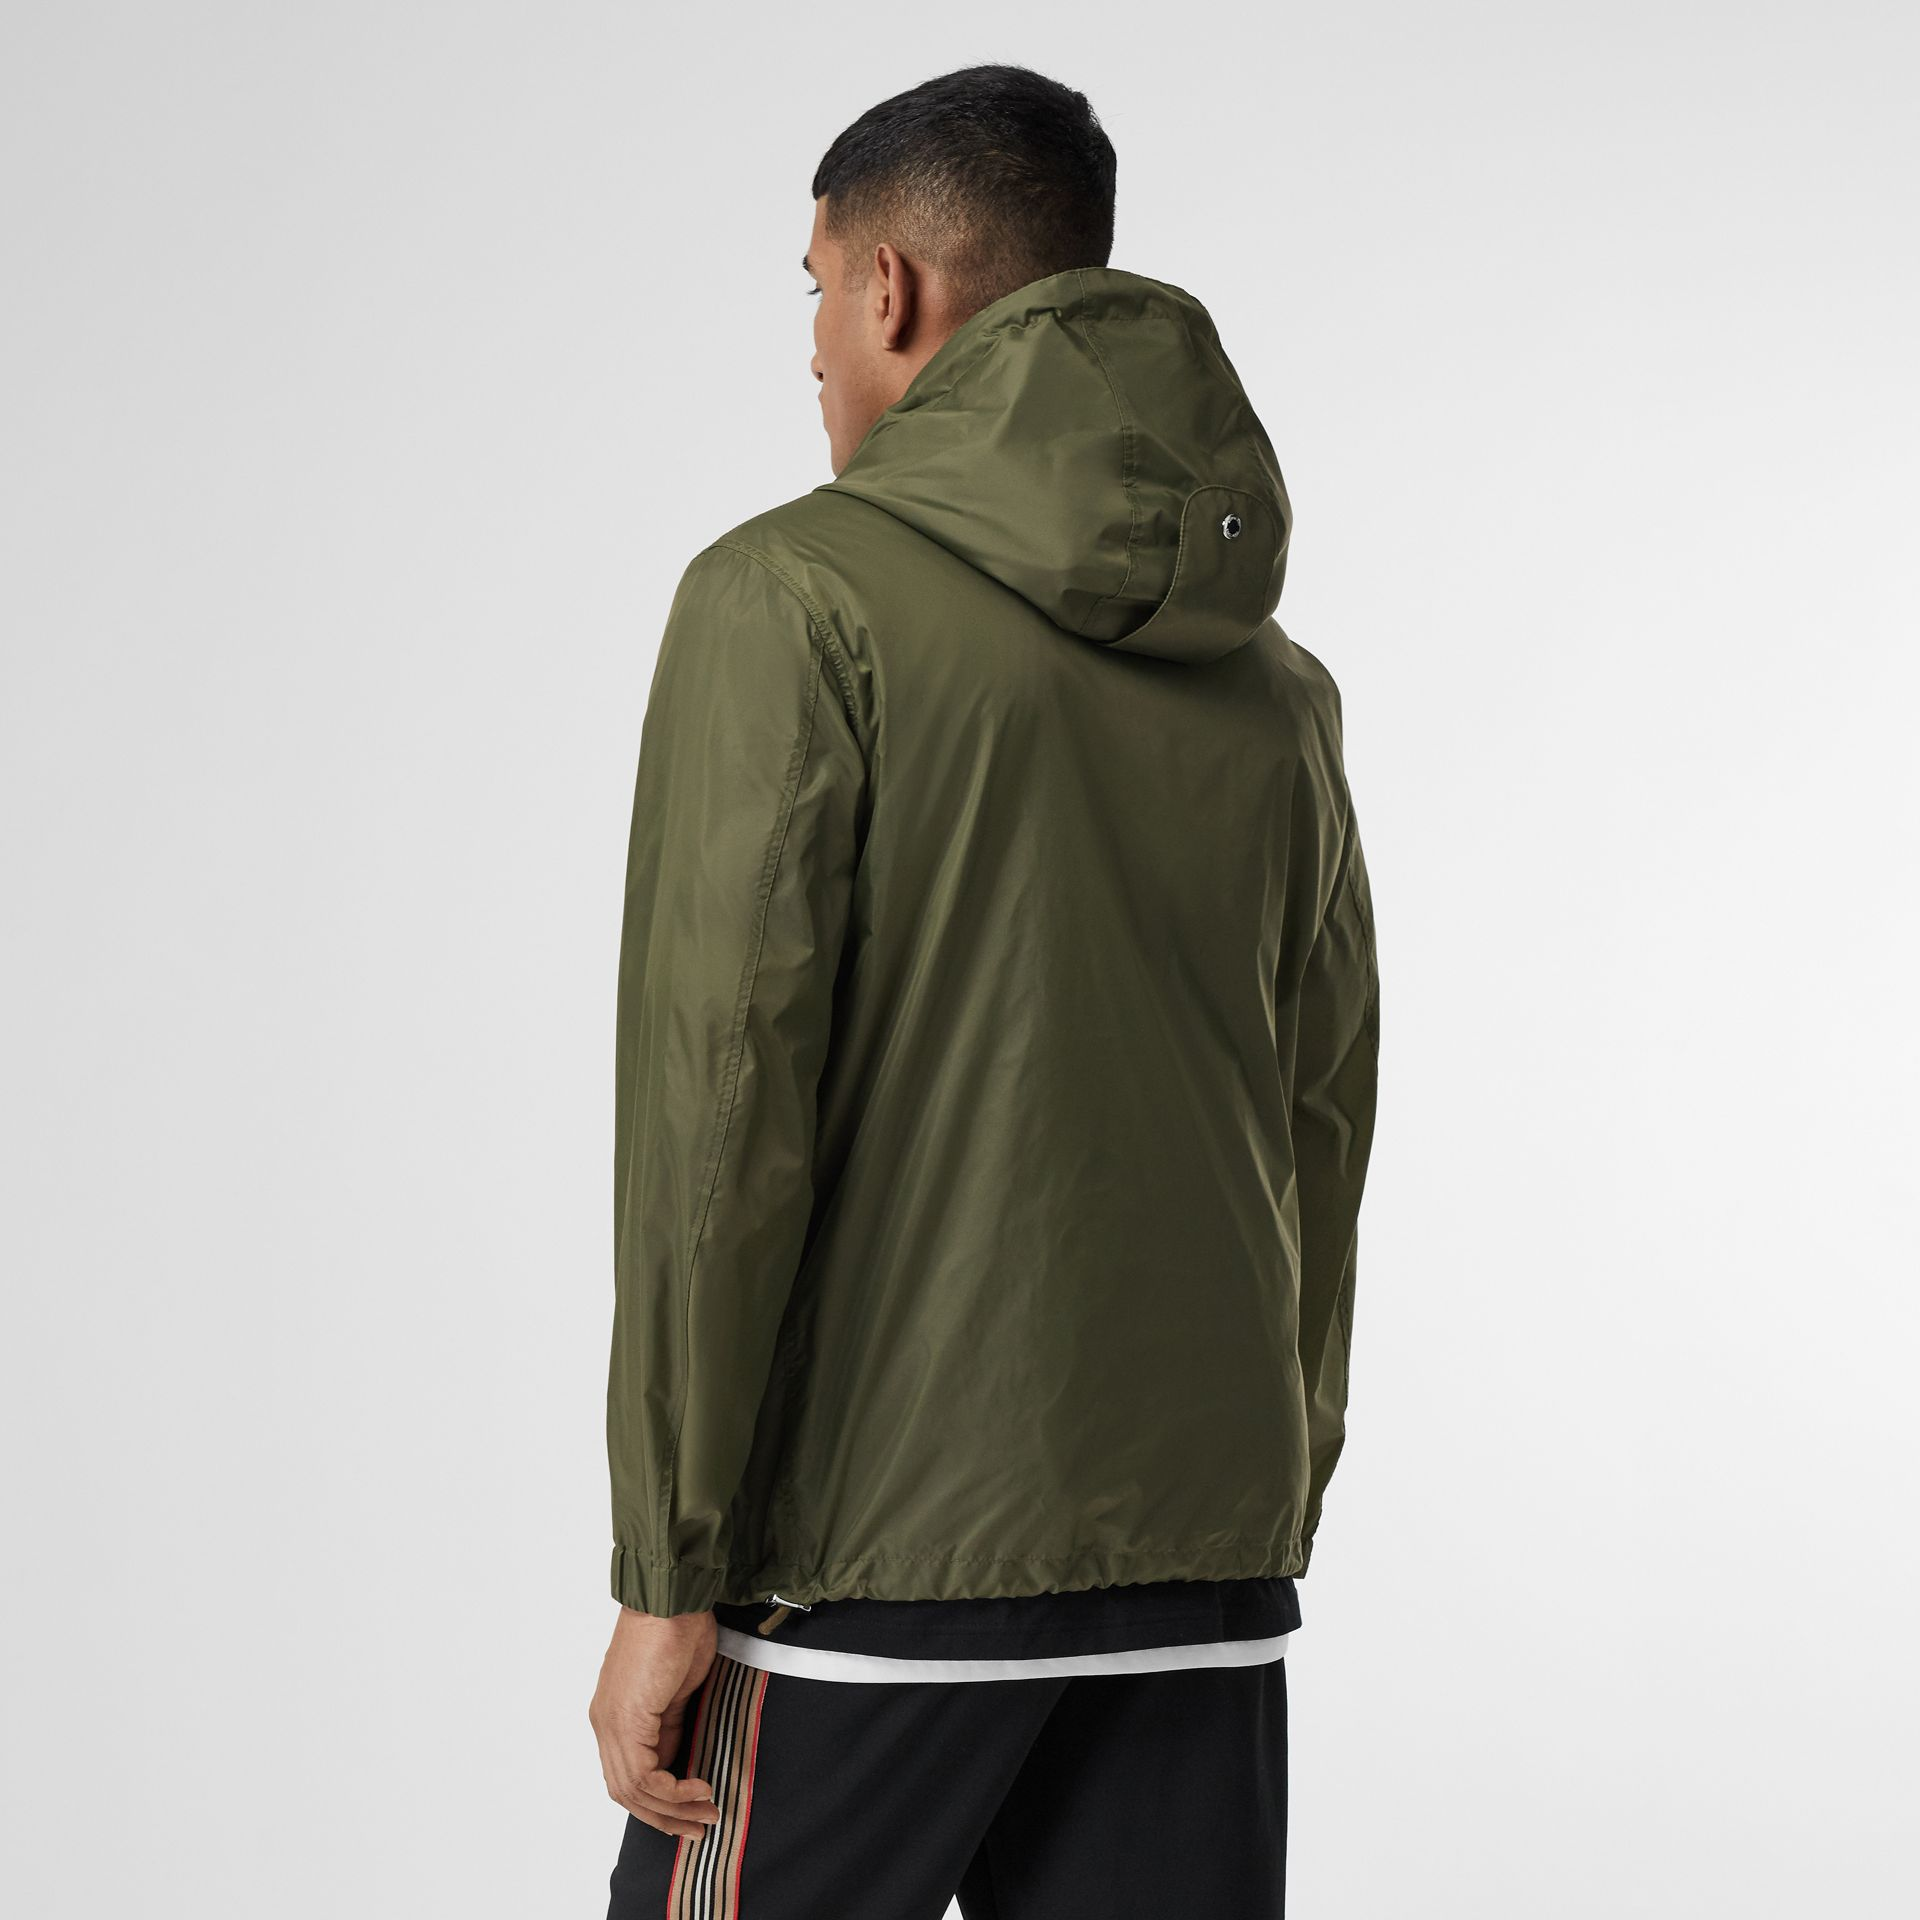 Monogram Motif Lightweight Hooded Jacket in Light Olive - Men | Burberry United Kingdom - gallery image 2